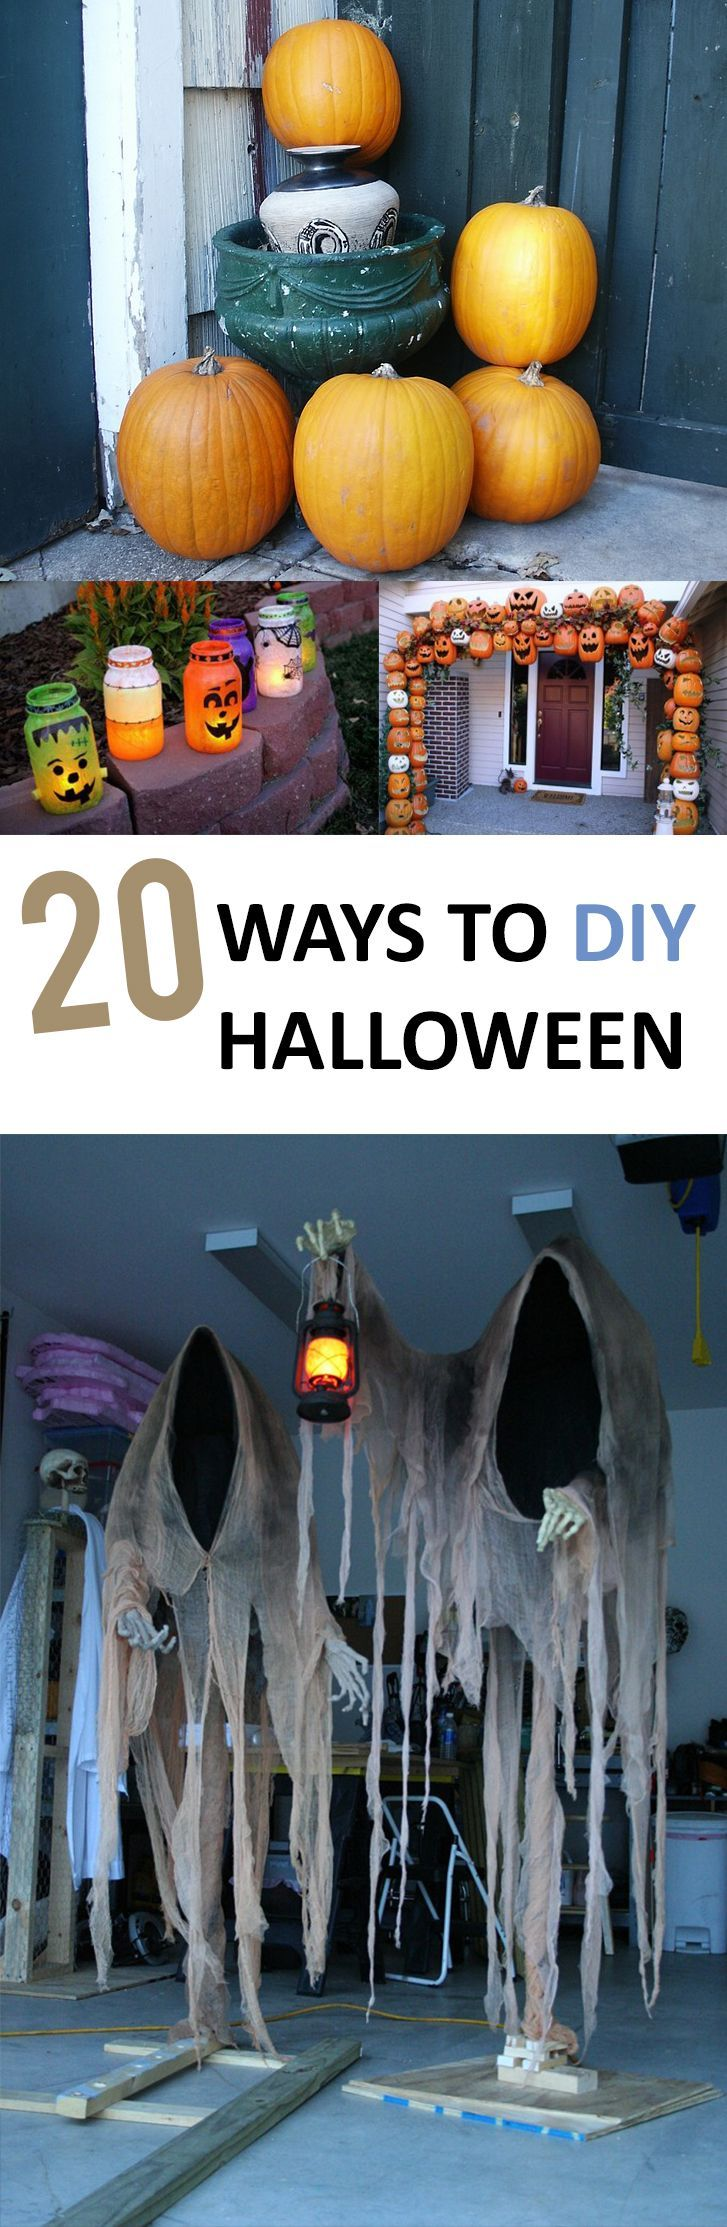 Halloween, DIY Halloween, spooky decorations, DIY Halloween decor - halloween decorations diy